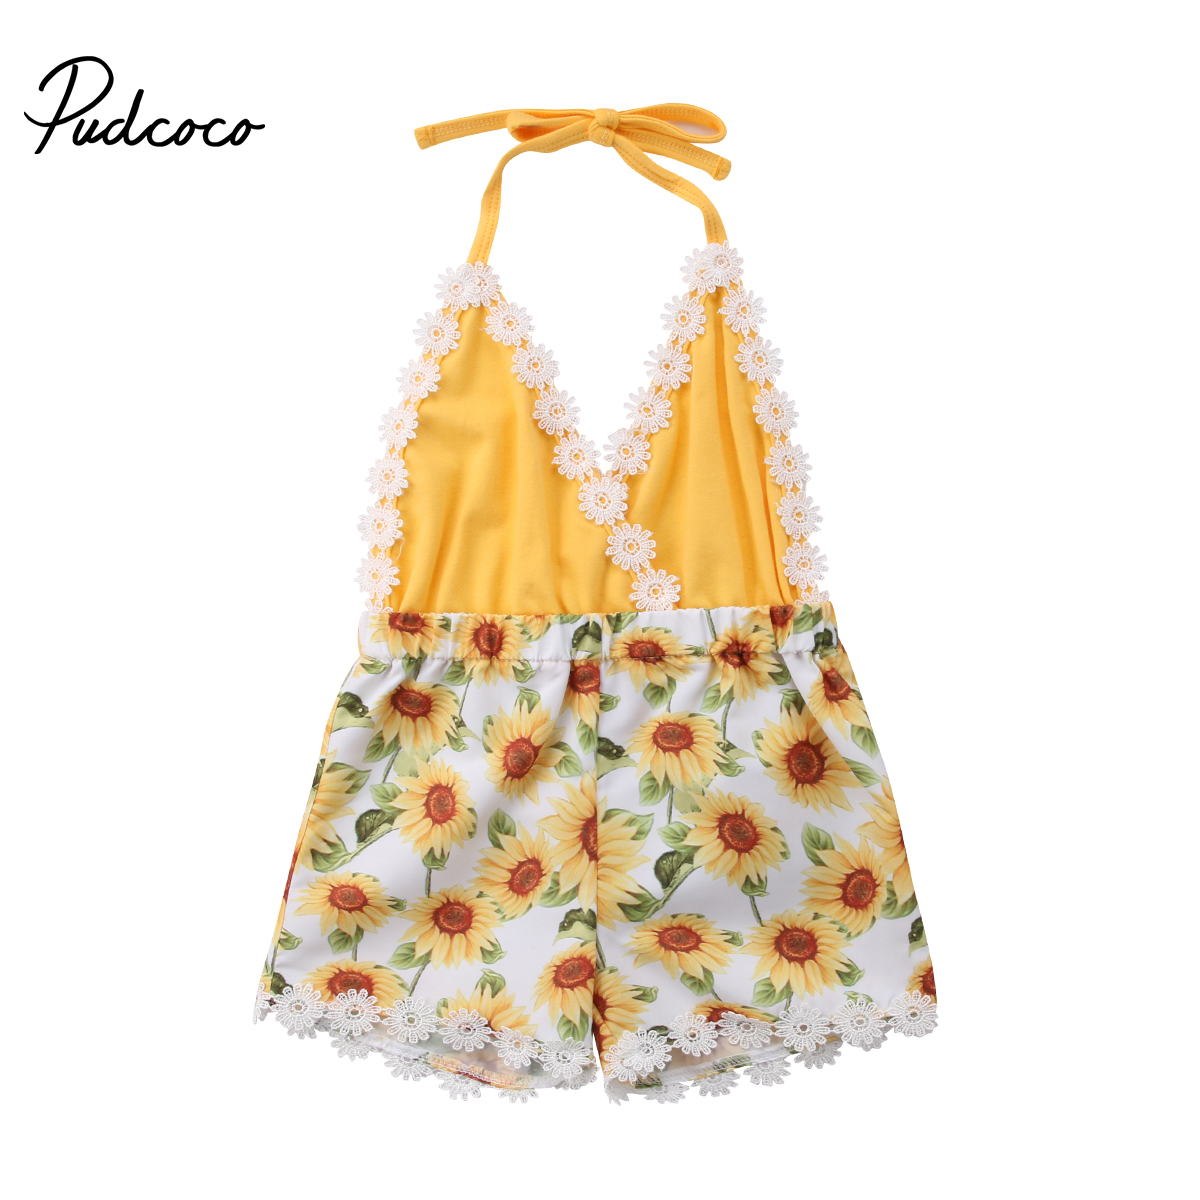 2018 Brand New 0-5Y Summer Toddler Baby Girls   Romper   Jumpsuits Lace Sleeveless Belt V-Neck Sunfolwer Yellow Patchwork   Romper